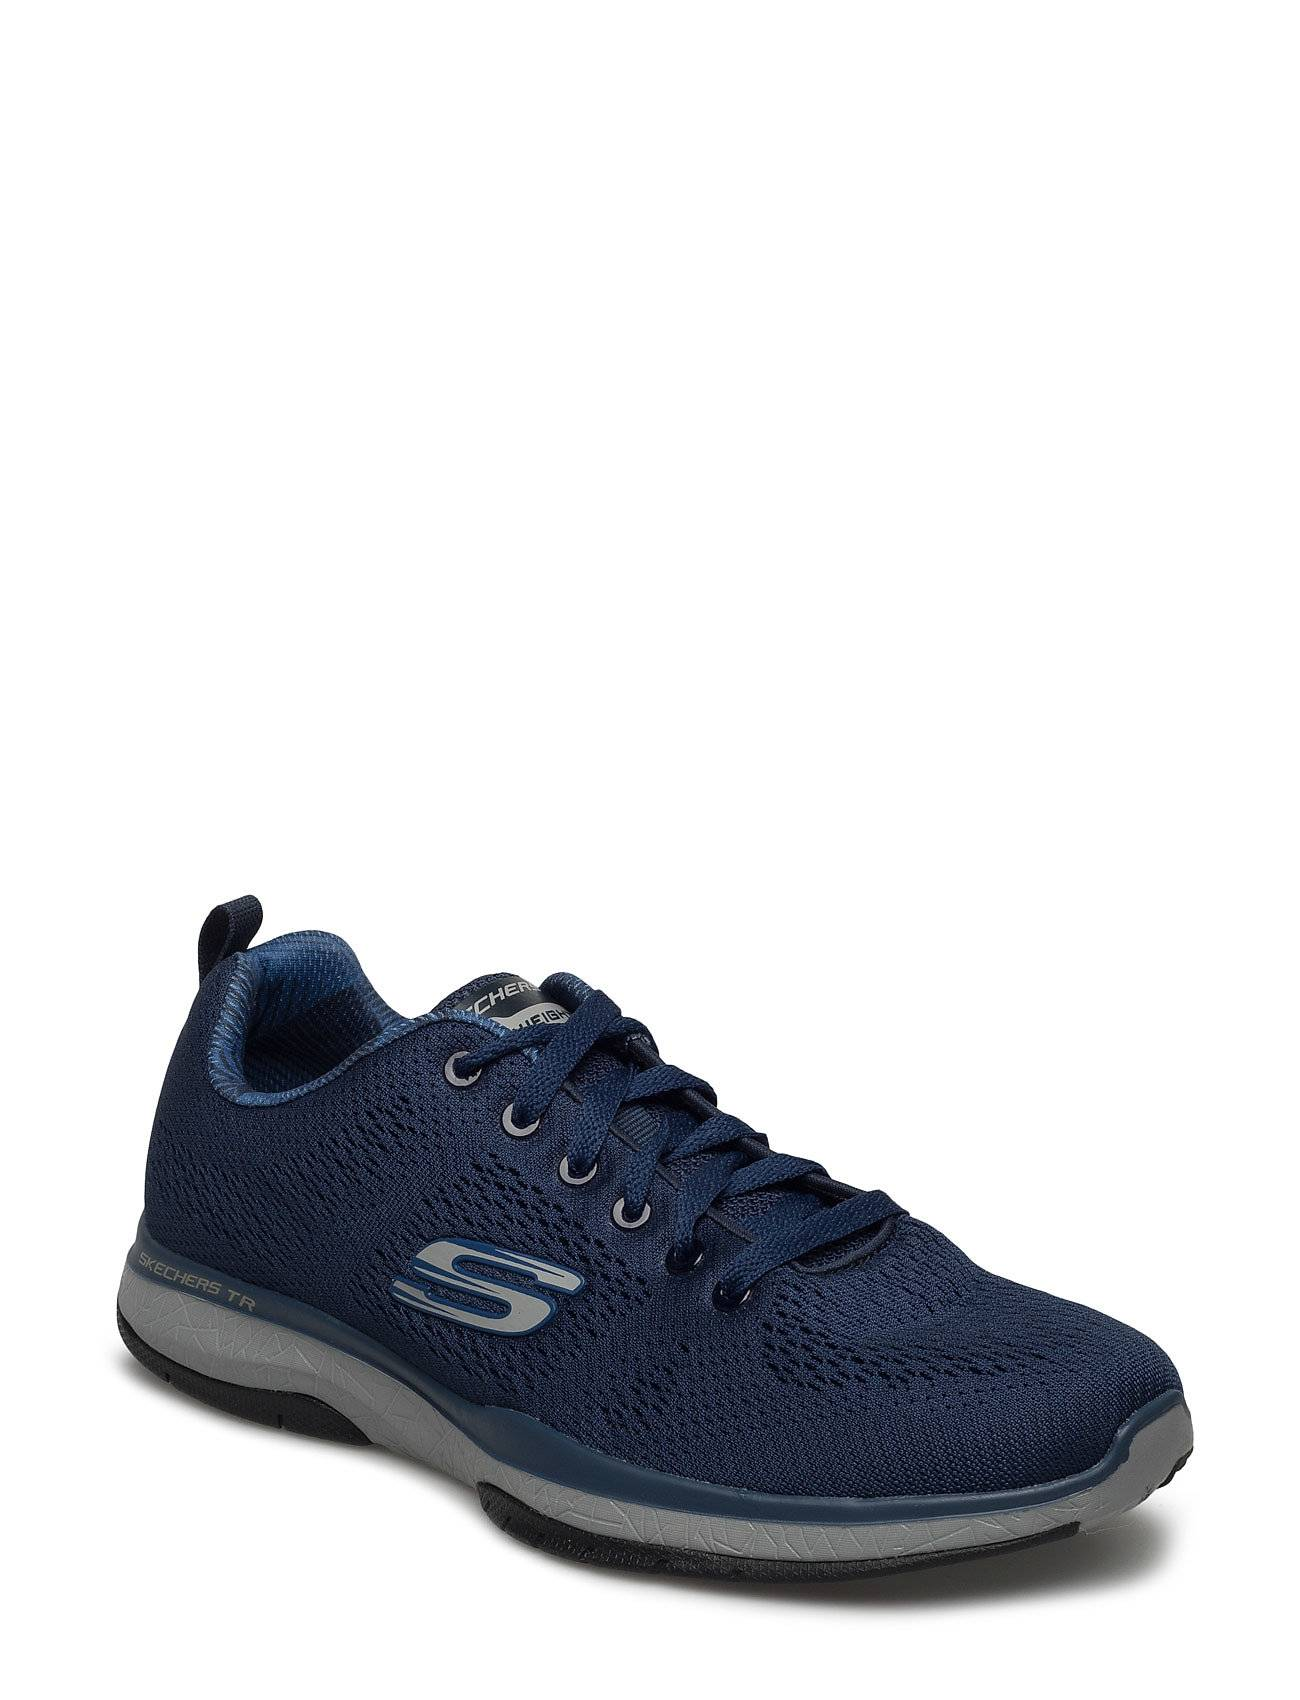 Skechers Mens Burst Tr Coram